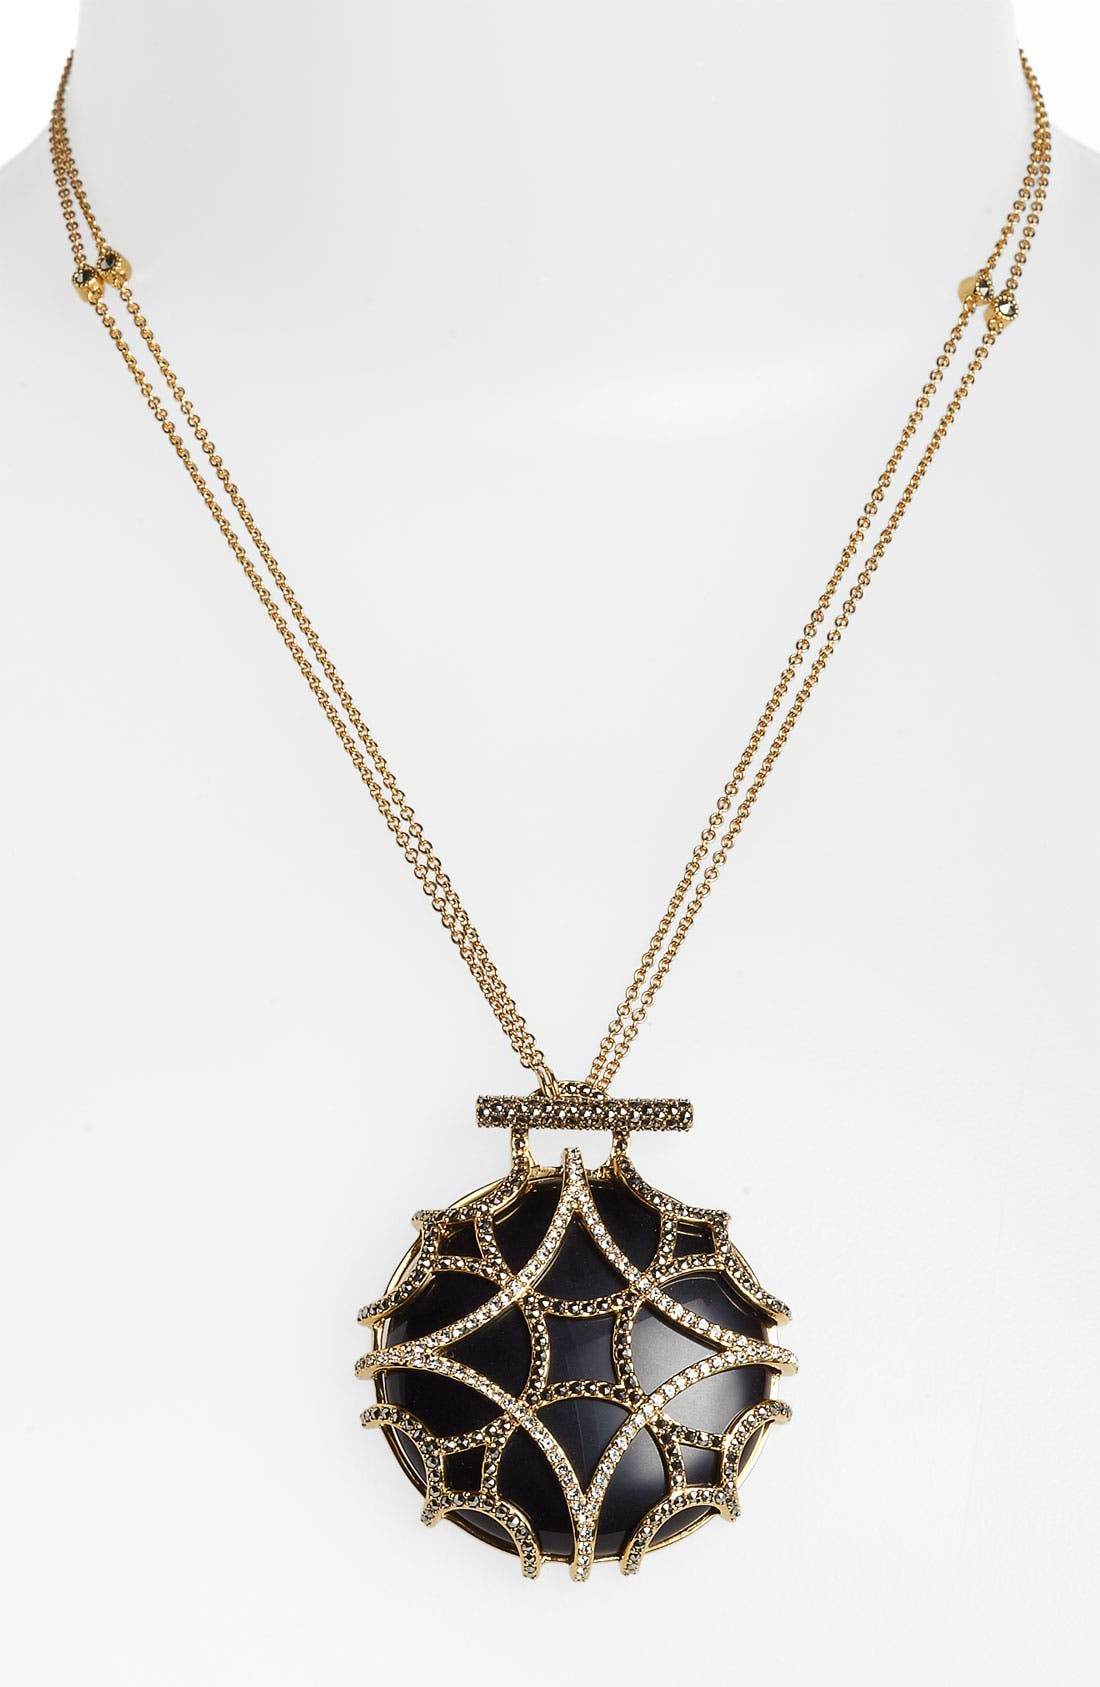 Main Image - Judith Jack 'Matrix' Long Convertible Pendant Necklace